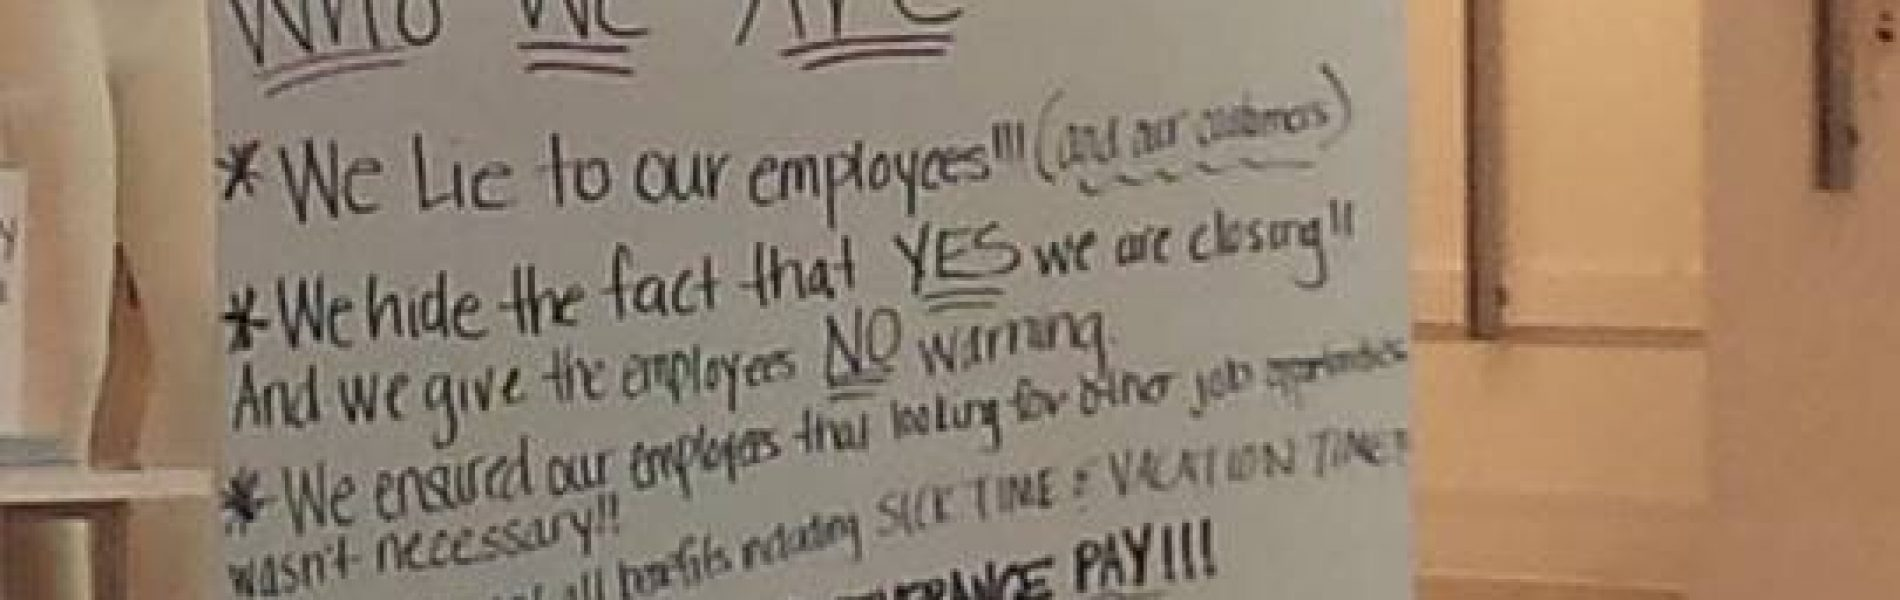 @WetSeal is just about dead, More Signs From Employees